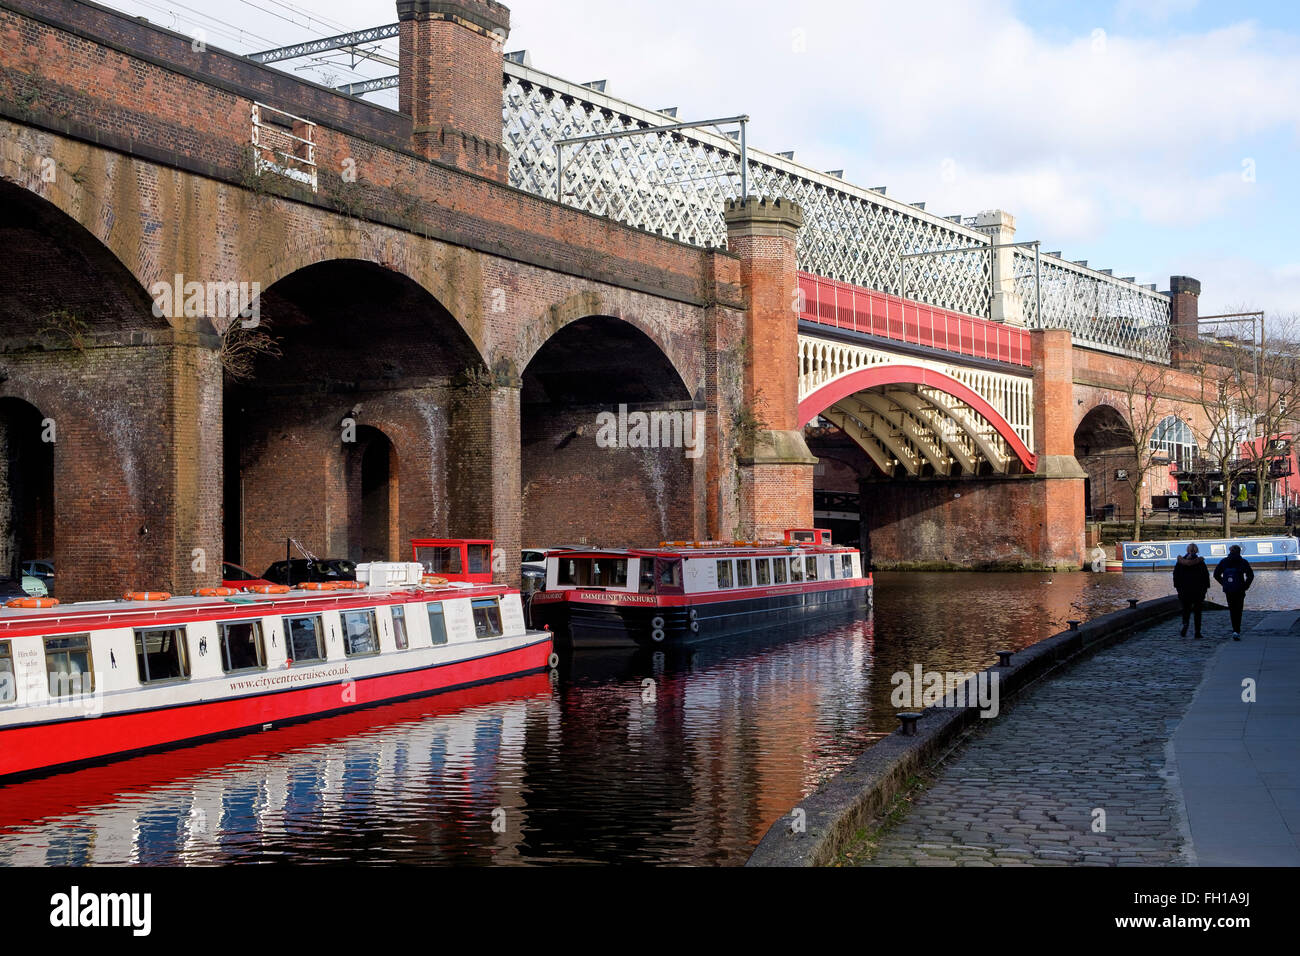 Manchester, UK - 15 February 2016: Victorian railway viaducts of the Castlefield viaduct above the Bridgewater Canal, - Stock Image